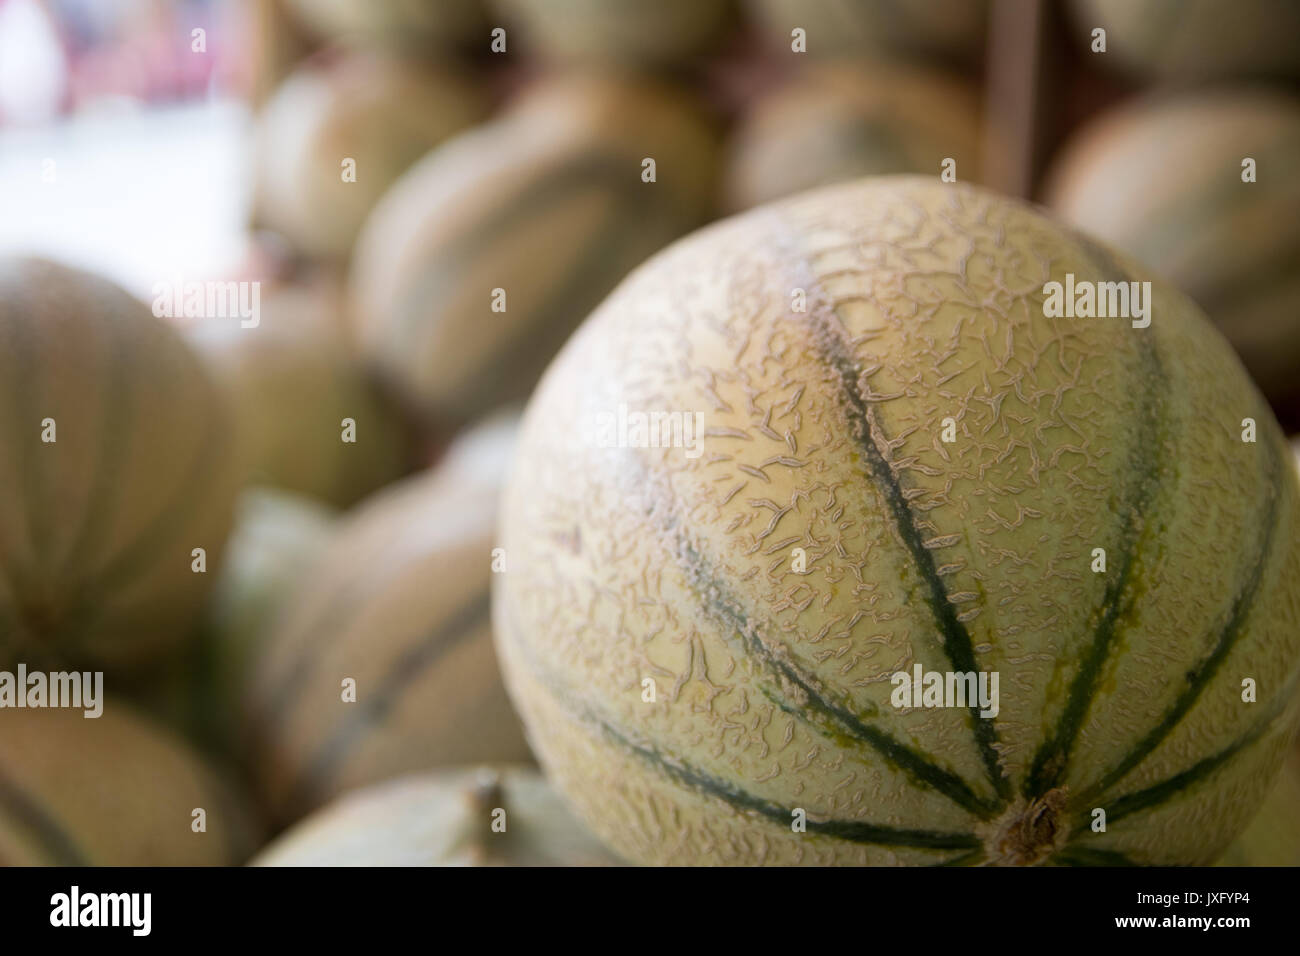 mature melons just picked up for sale by grocery store - Stock Image